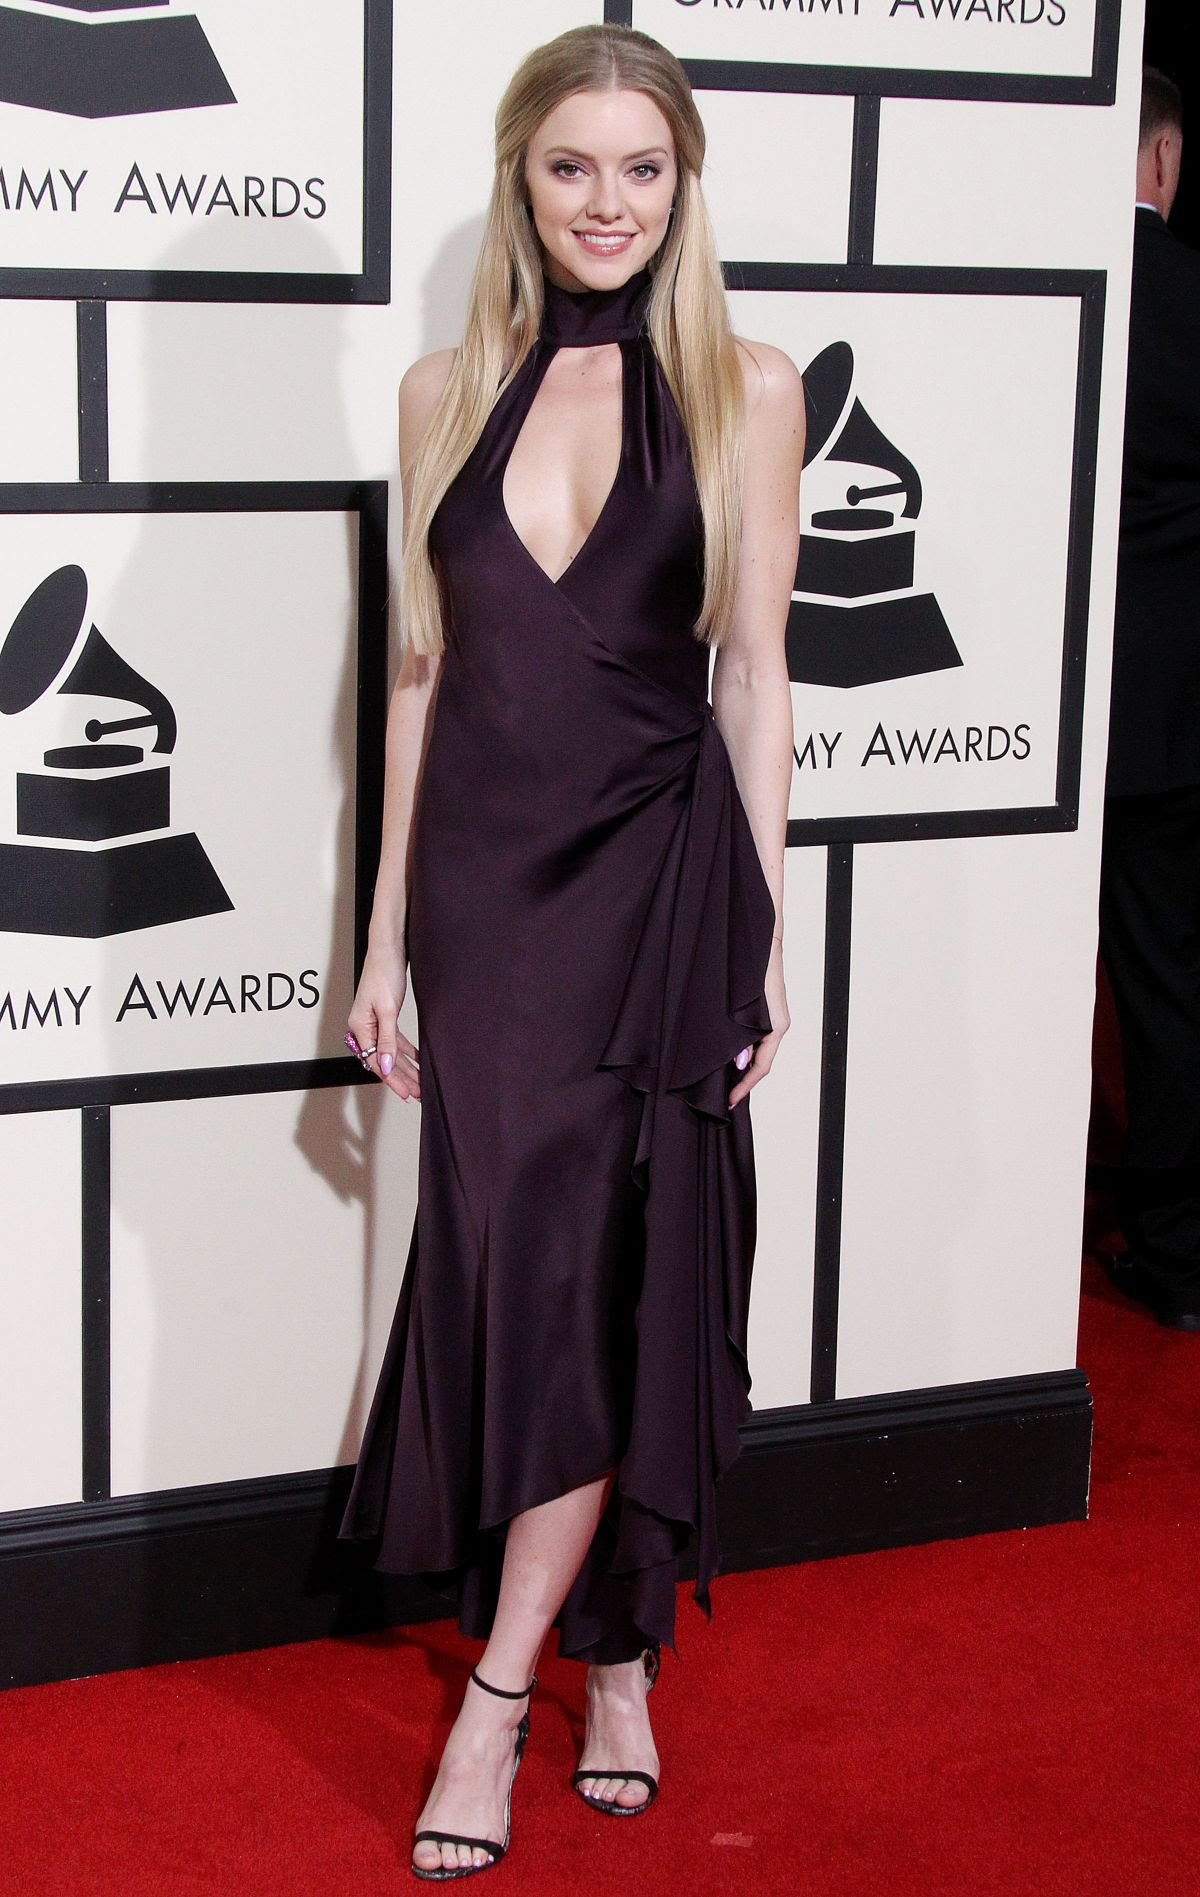 ELLE EVNS at Grammy Awards 2016 in Los Angeles 02/15/2016